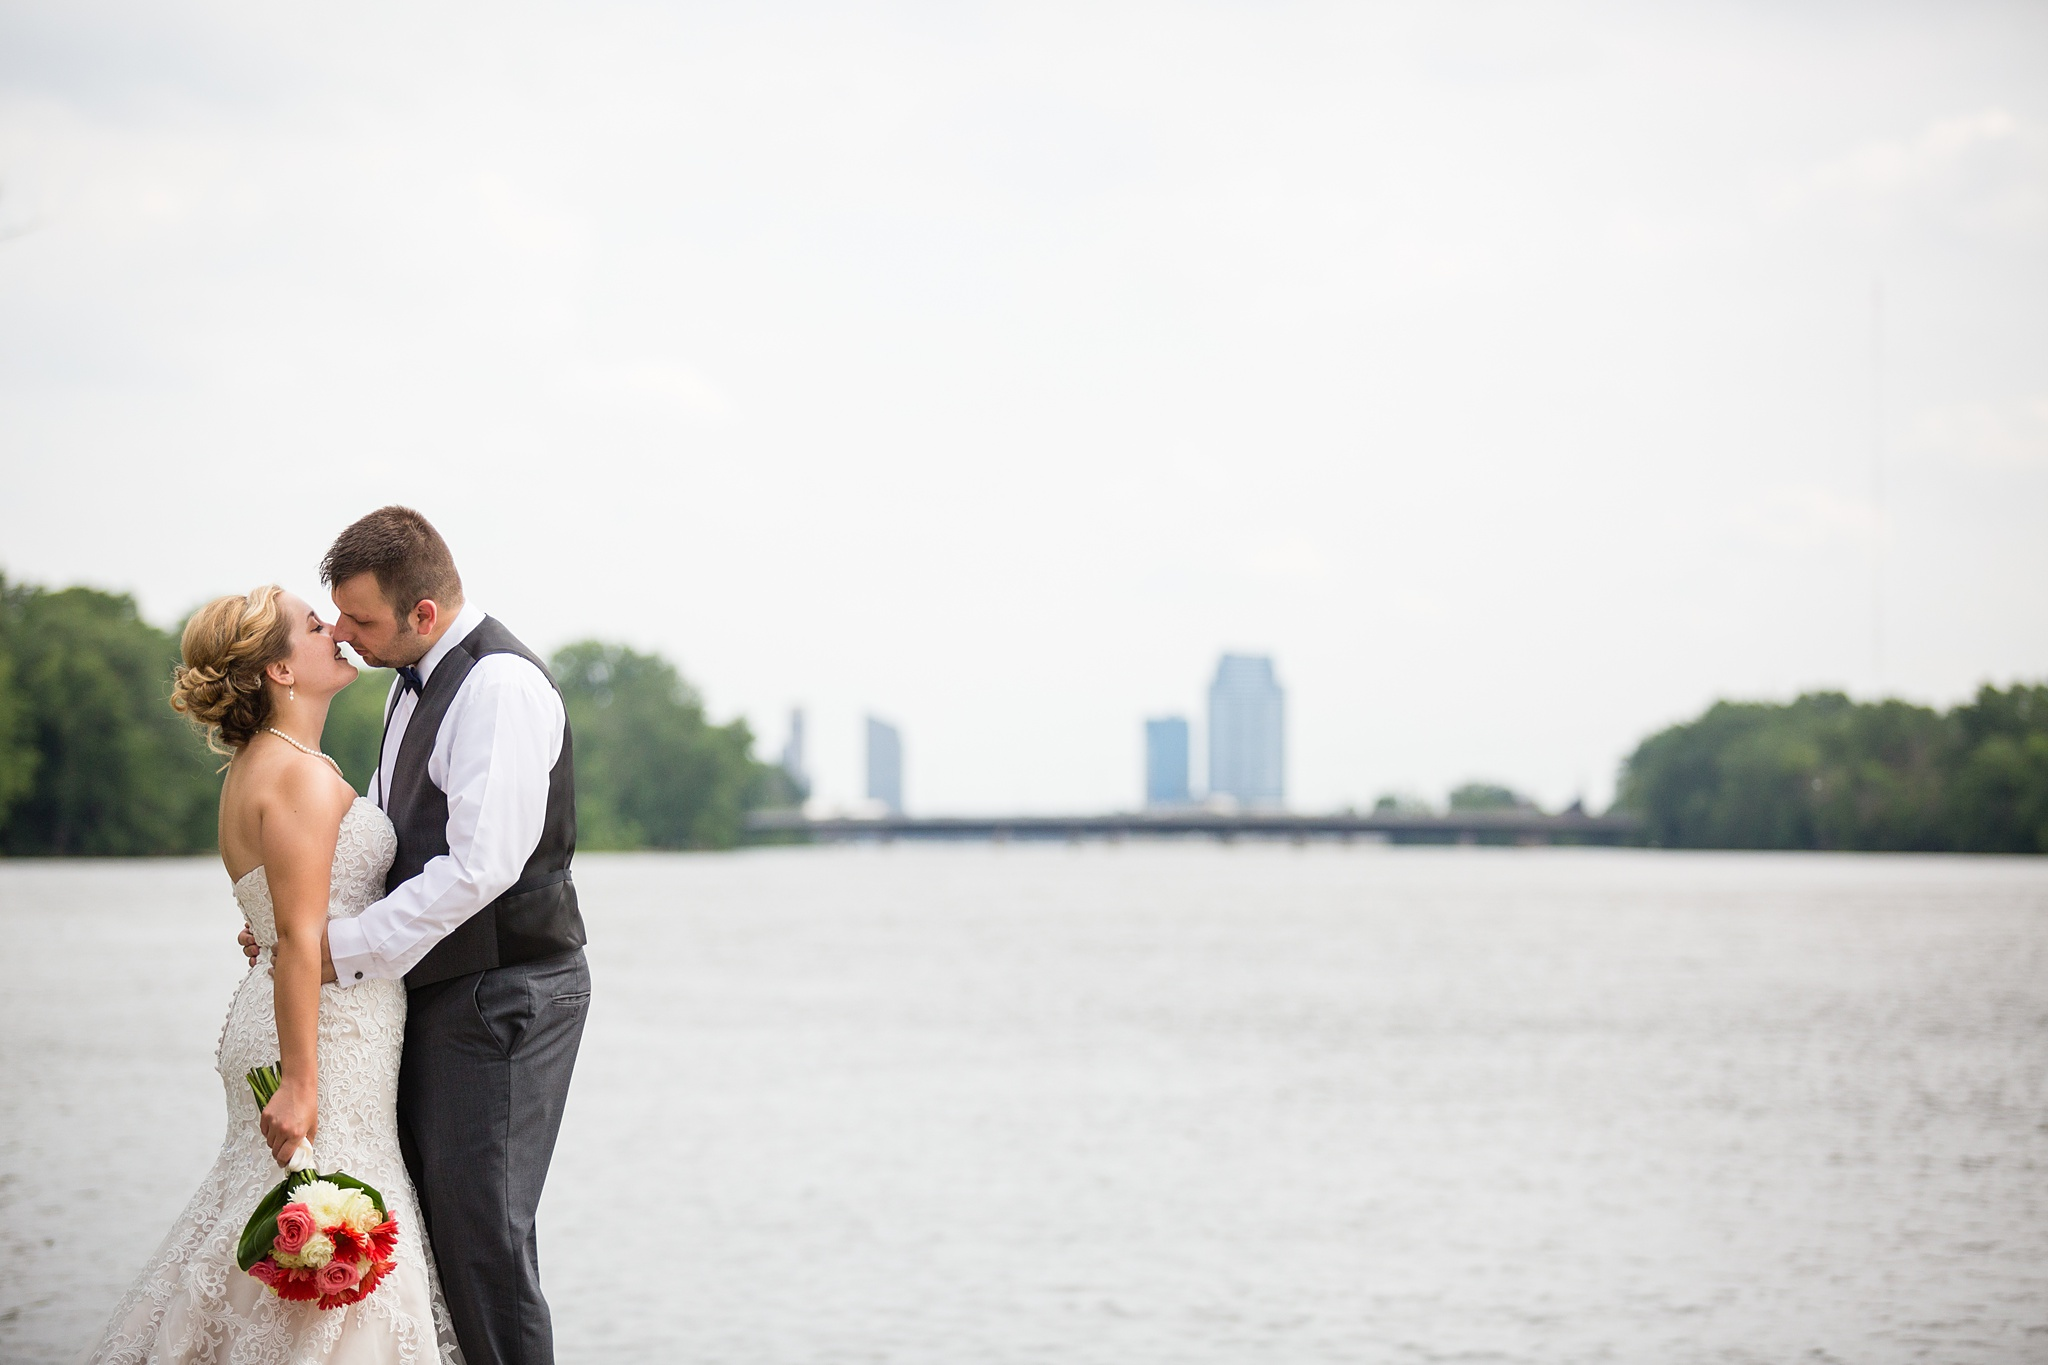 Brandon_Shafer_Photography_Grand_Rapids_Bride_Groom_0041.jpg